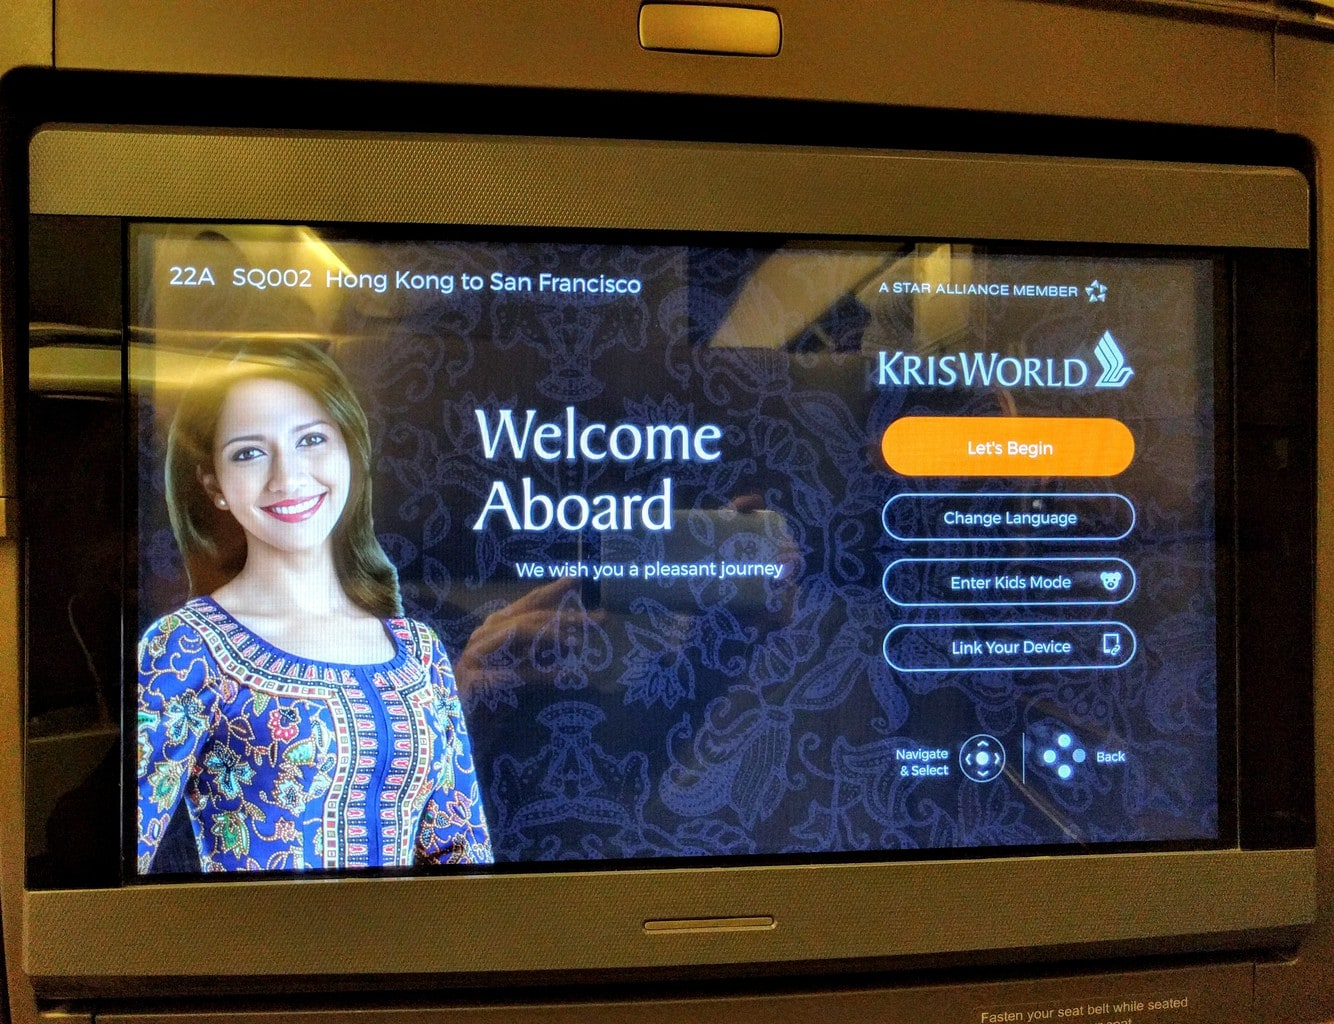 Review of Singapore Airlines Business Class to San Francisco via